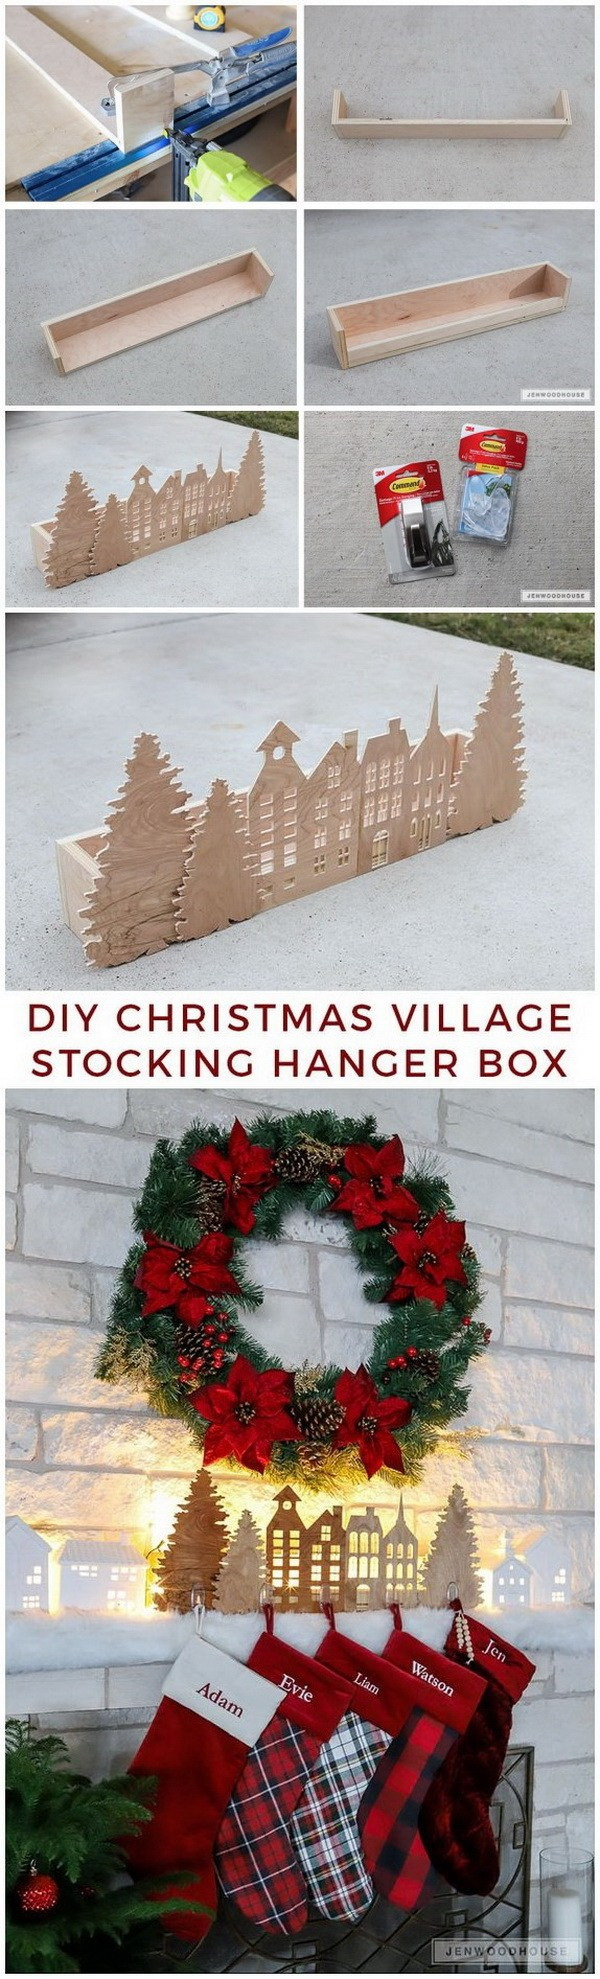 DIY Christmas Village Stocking Hanger Box. What a fun and easy DIY project for your mantle decoration this Chirstmas season!